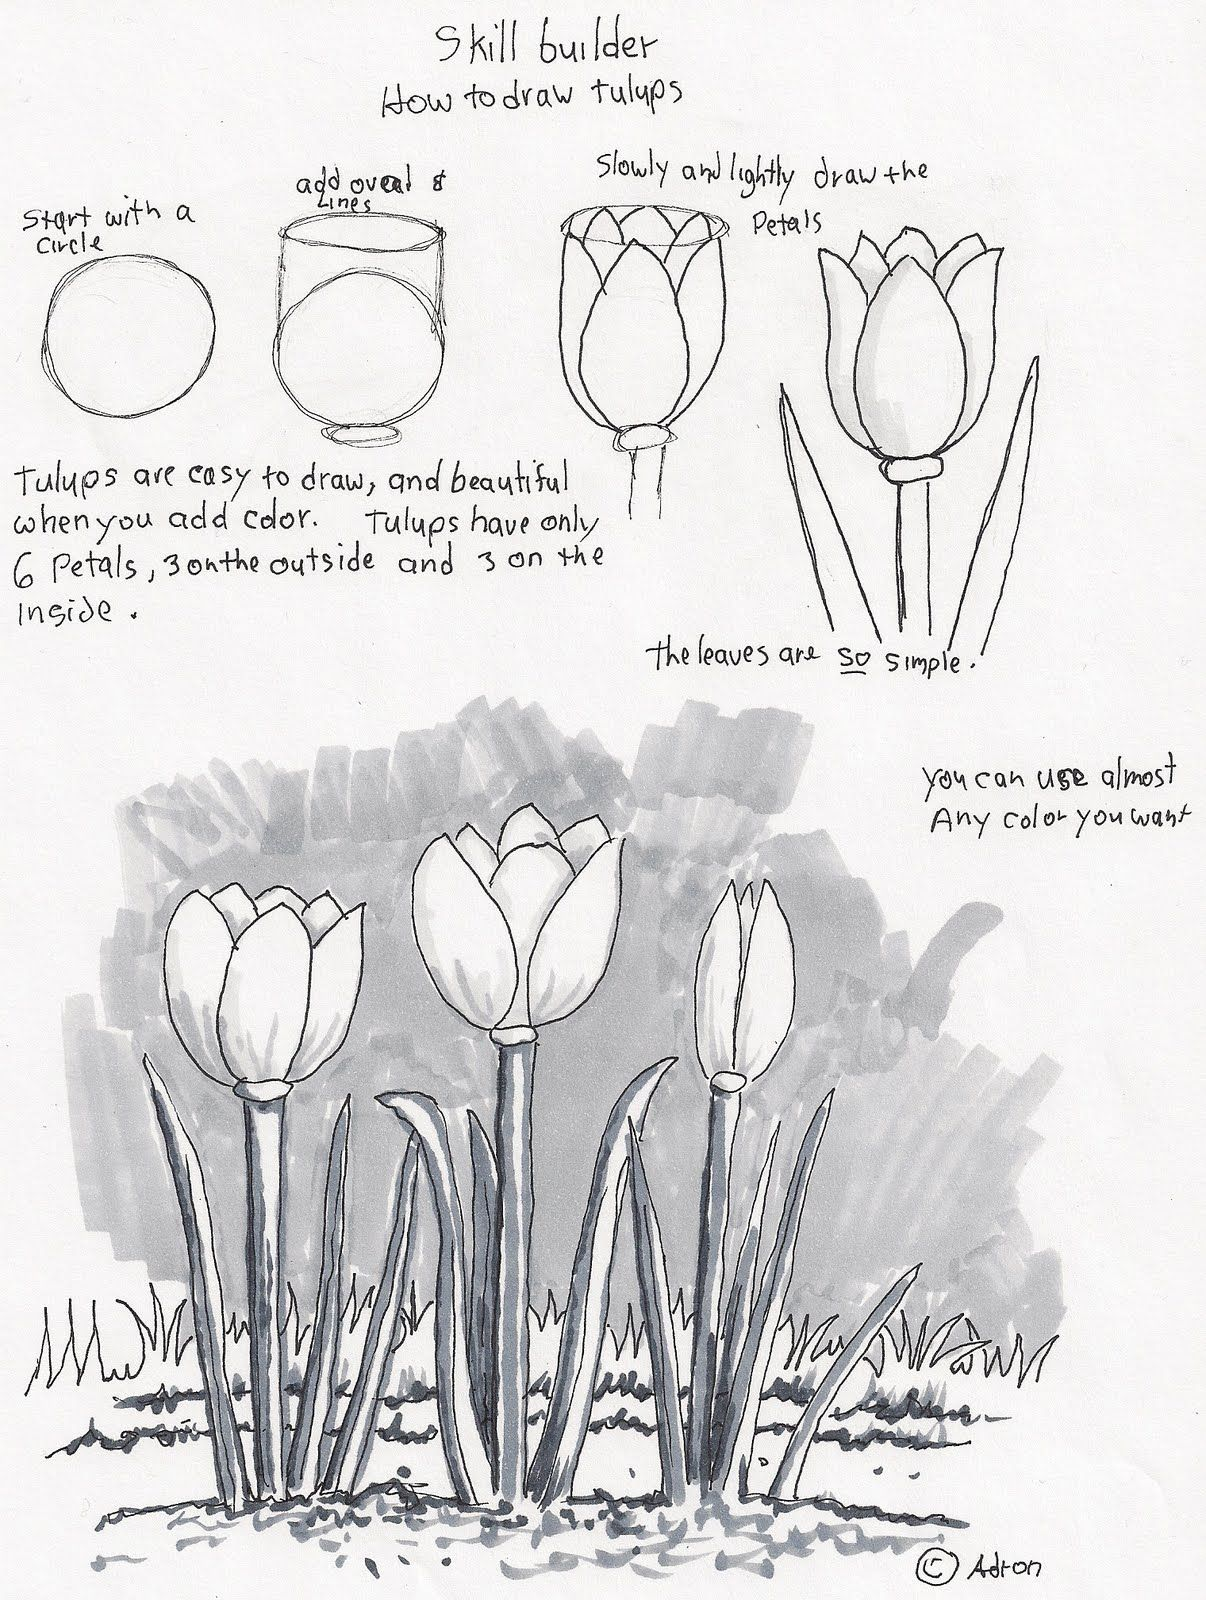 Adrons art lesson plans how to draw tulips a beginners drawing adrons art lesson plans how to draw tulips a beginners drawing lesson izmirmasajfo